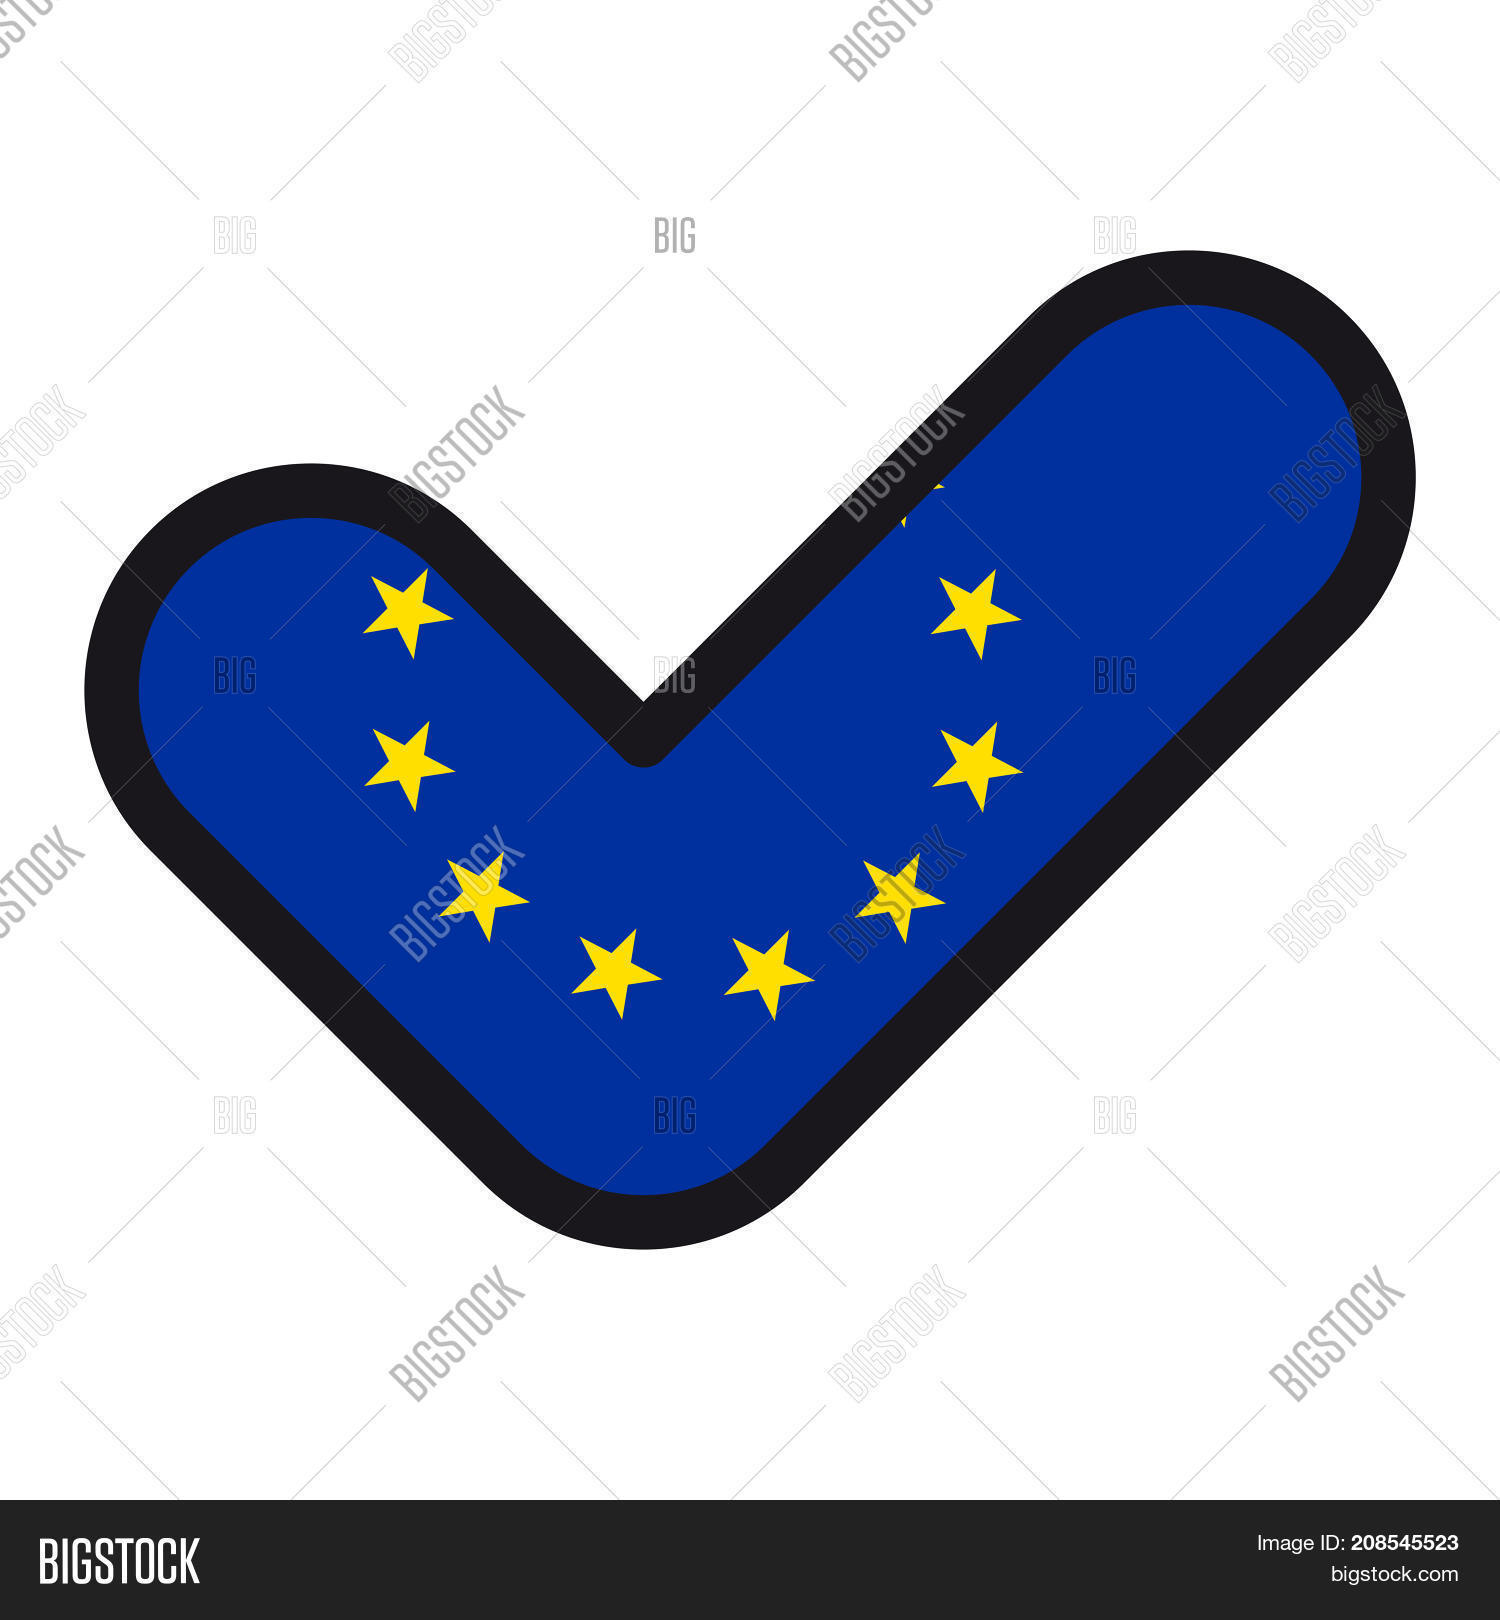 Flag European Union Image Photo Free Trial Bigstock